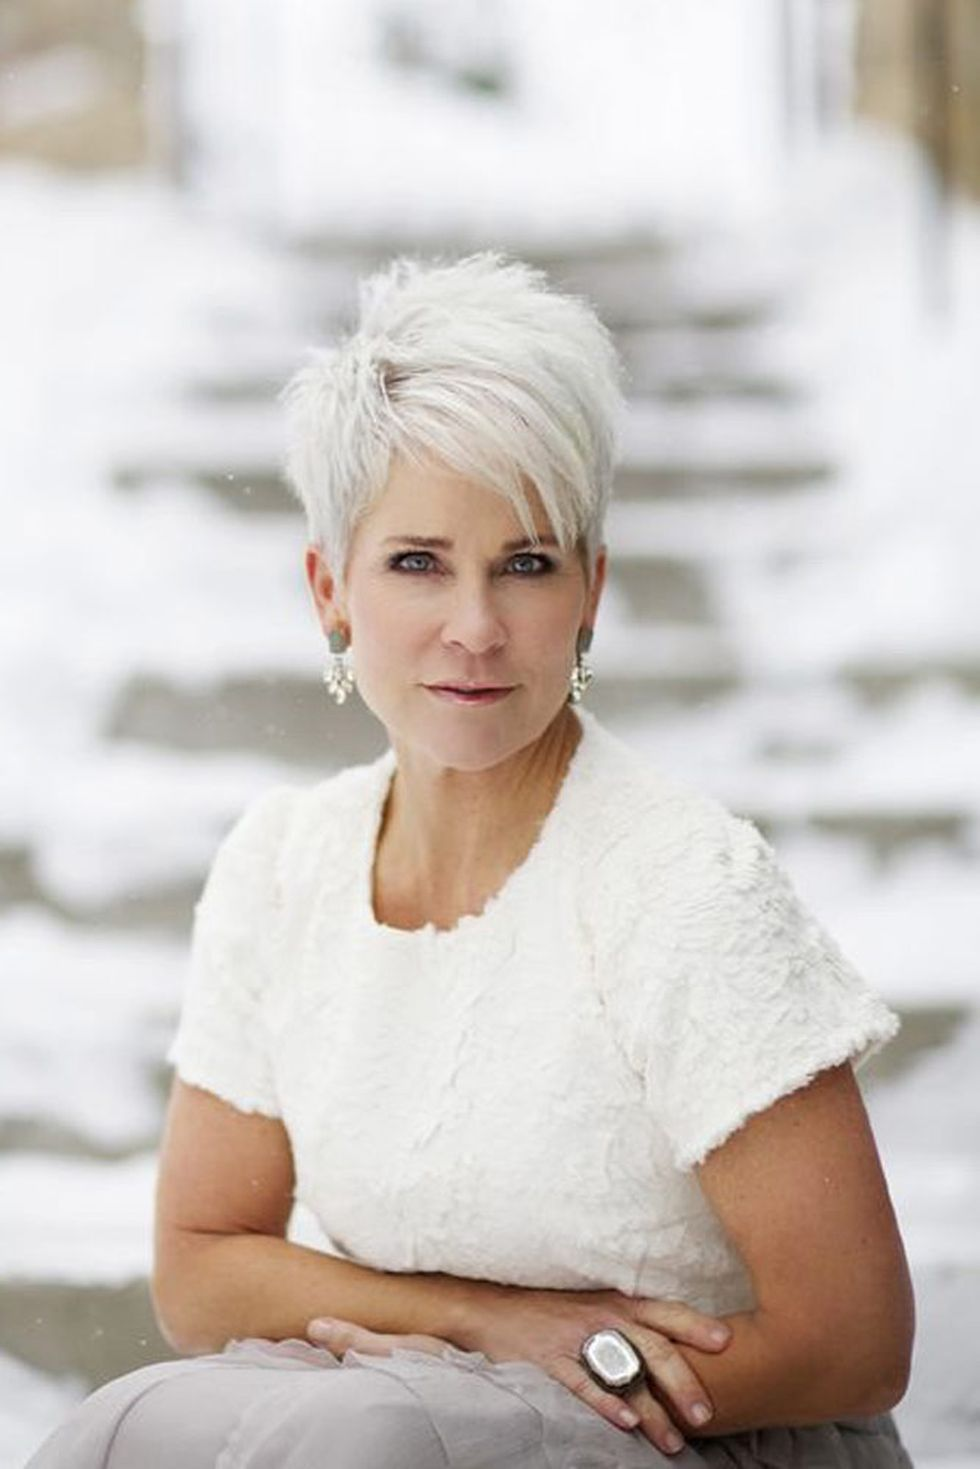 Fabulous over 50 short hairstyle ideas 44